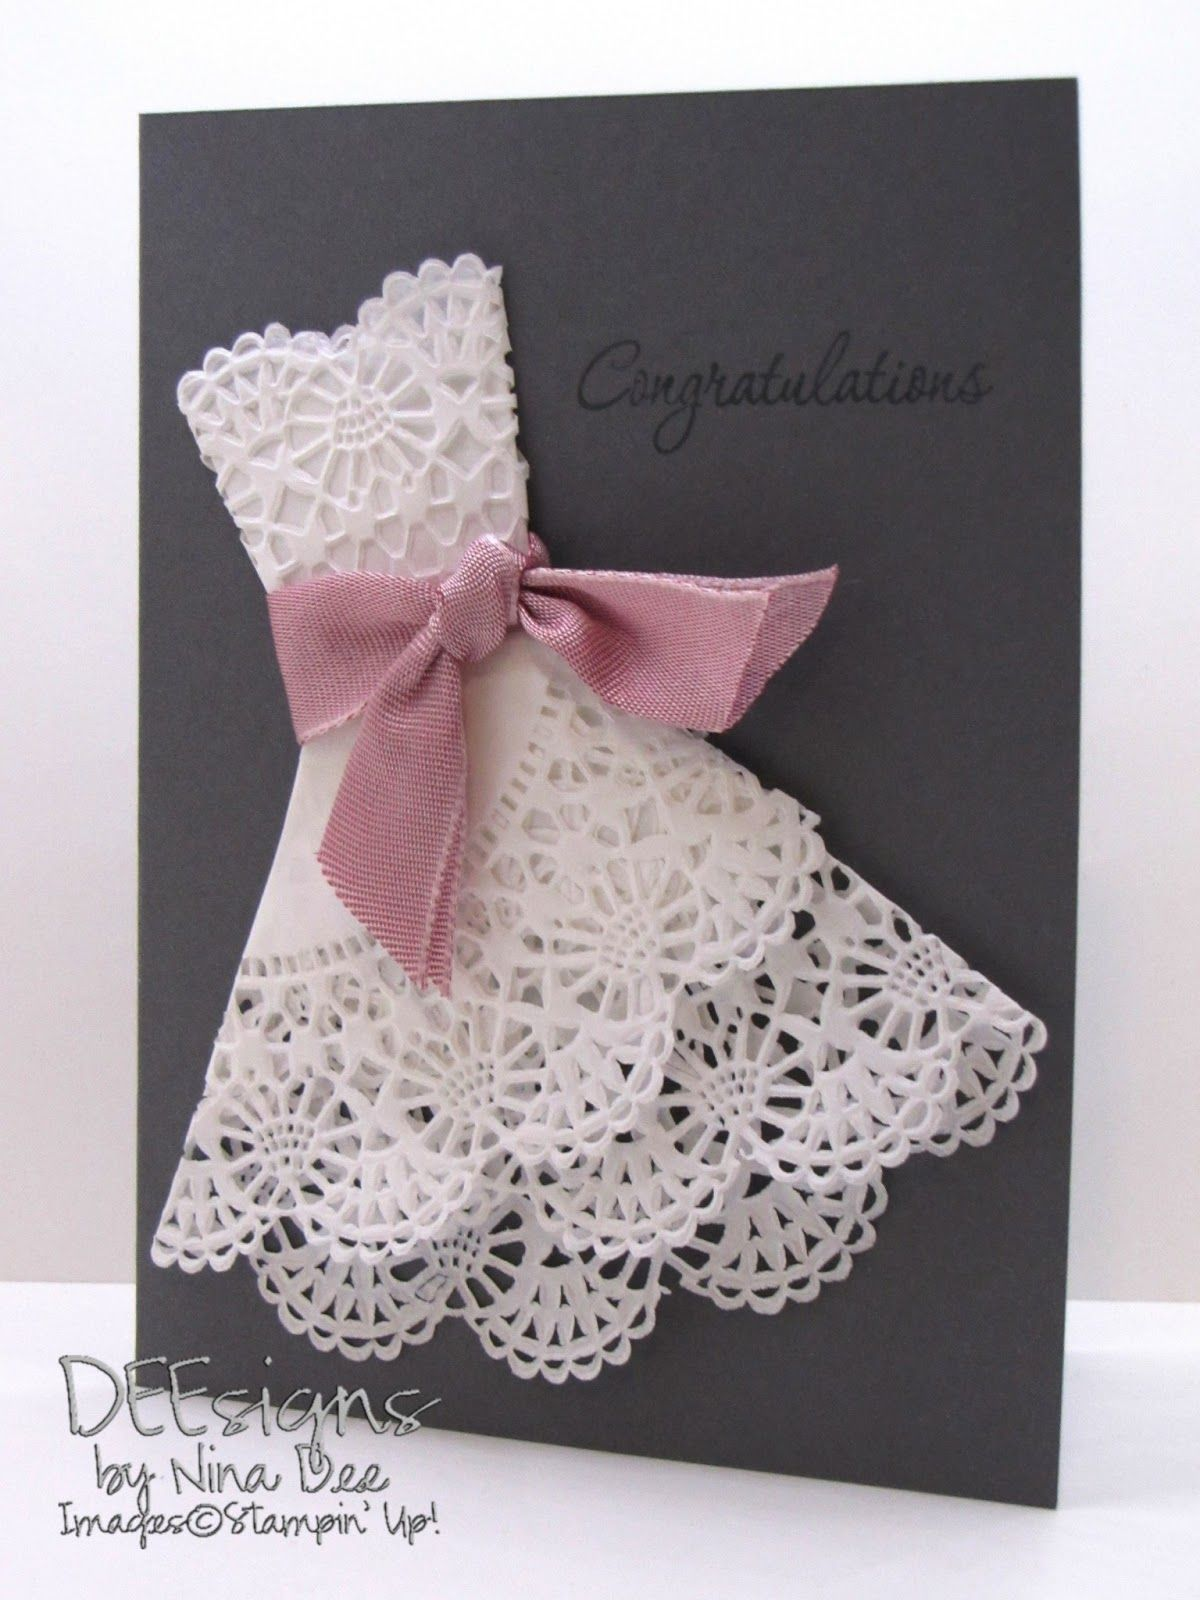 Gift Card Tree Ideas Pinterest - Deesigns by nina dee wedding wishes made with doily dress tutorial on card tutorials hints tips folder